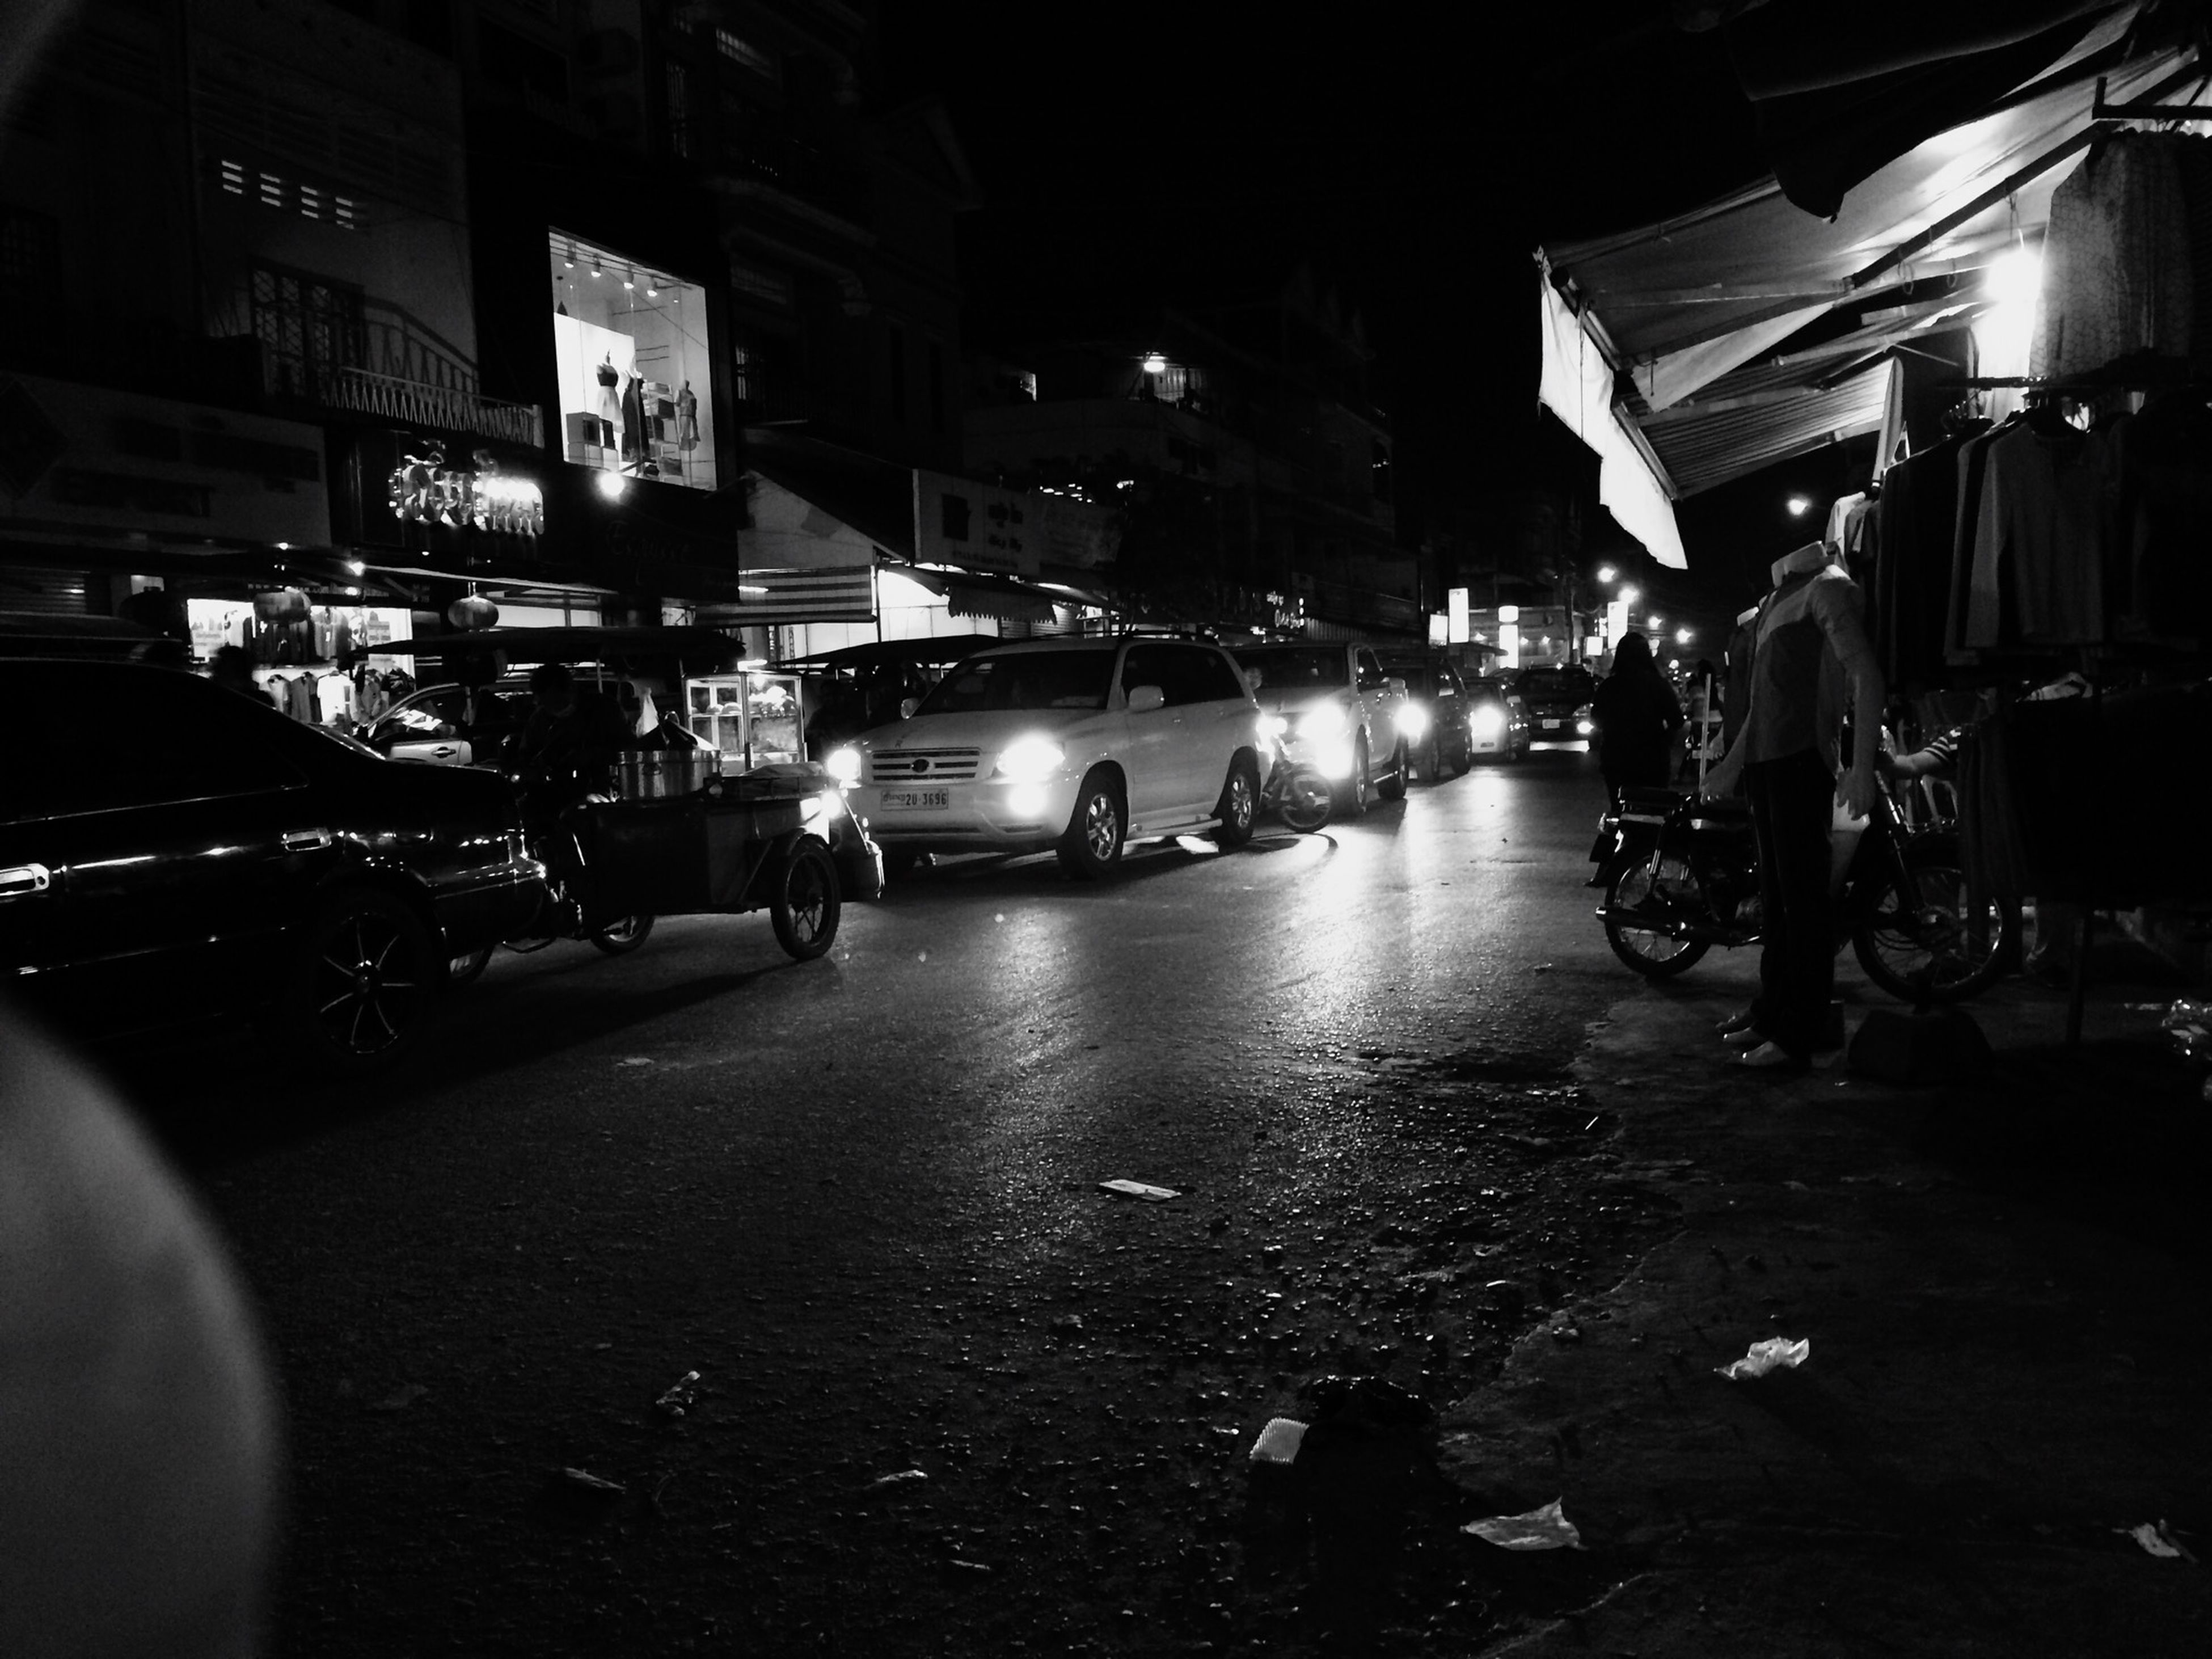 transportation, land vehicle, street, car, mode of transport, building exterior, city, architecture, built structure, city life, city street, men, road, night, incidental people, illuminated, on the move, traffic, person